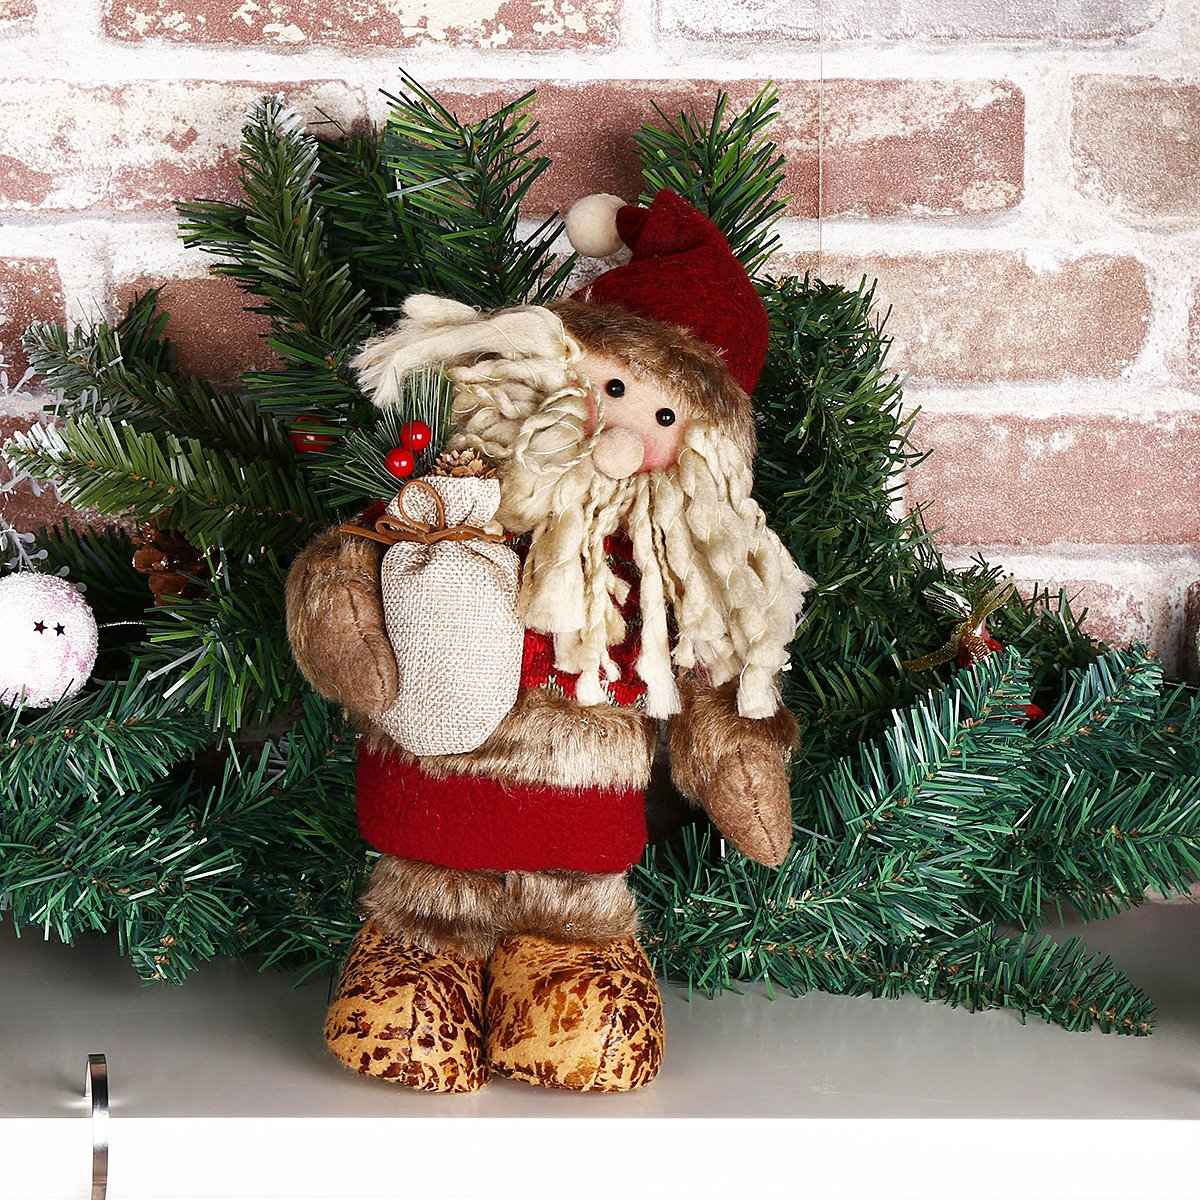 Codream 11 Standing Santa Claus Christmas Collectible Figurine Toy Tree Decent Ornaments Home Indoor Table Fireplace Shelf Window Sitter Figurine Ornament Decoration Gifts